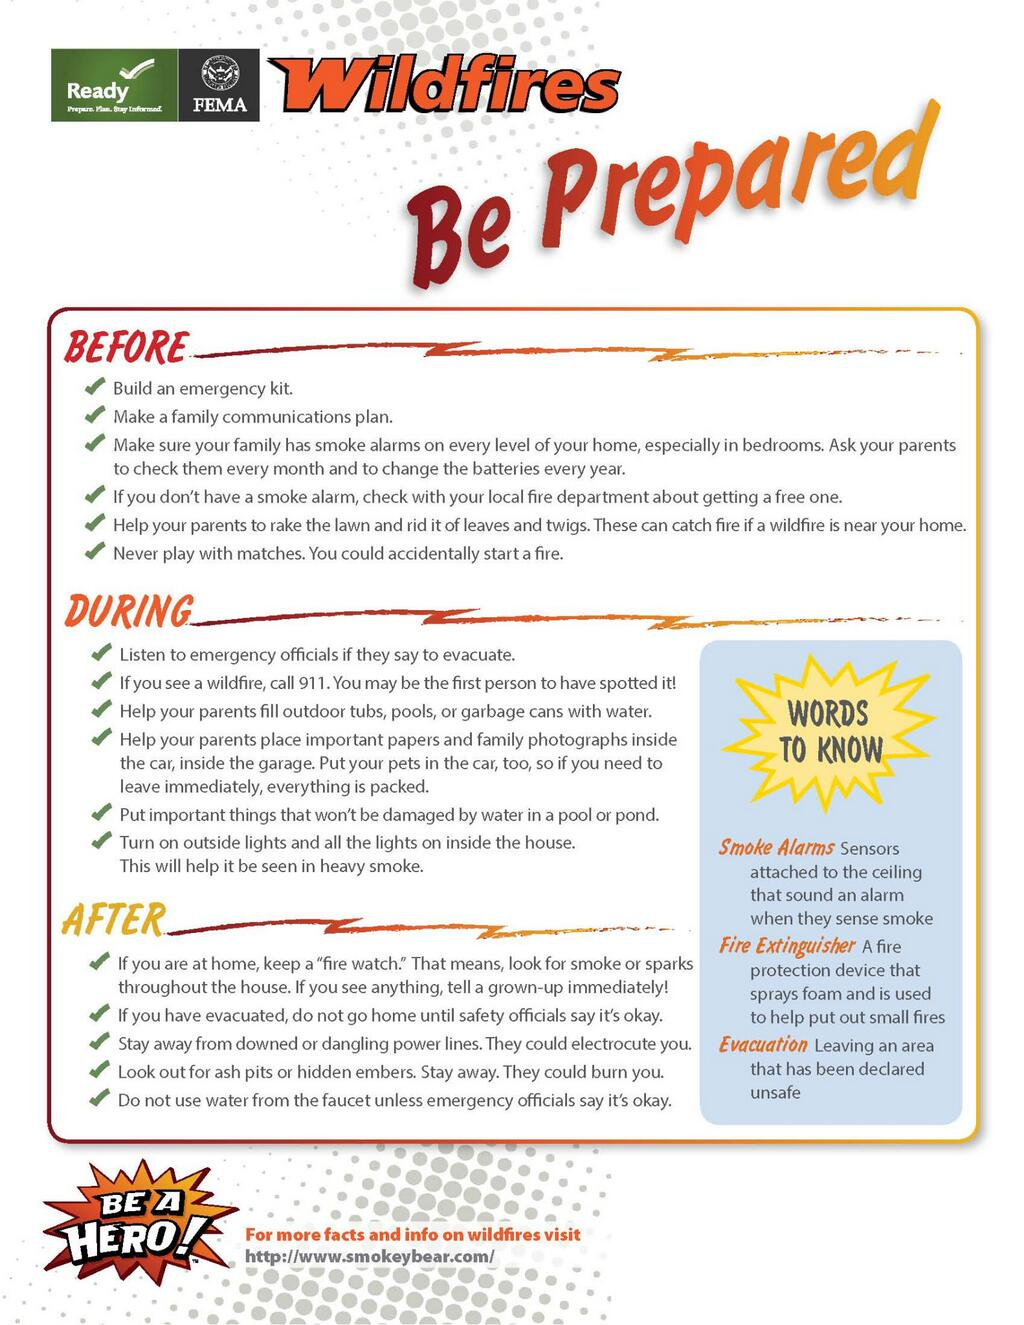 Wildfire Safety Toolkit – NOW IS THE TIME TO PREPARE!